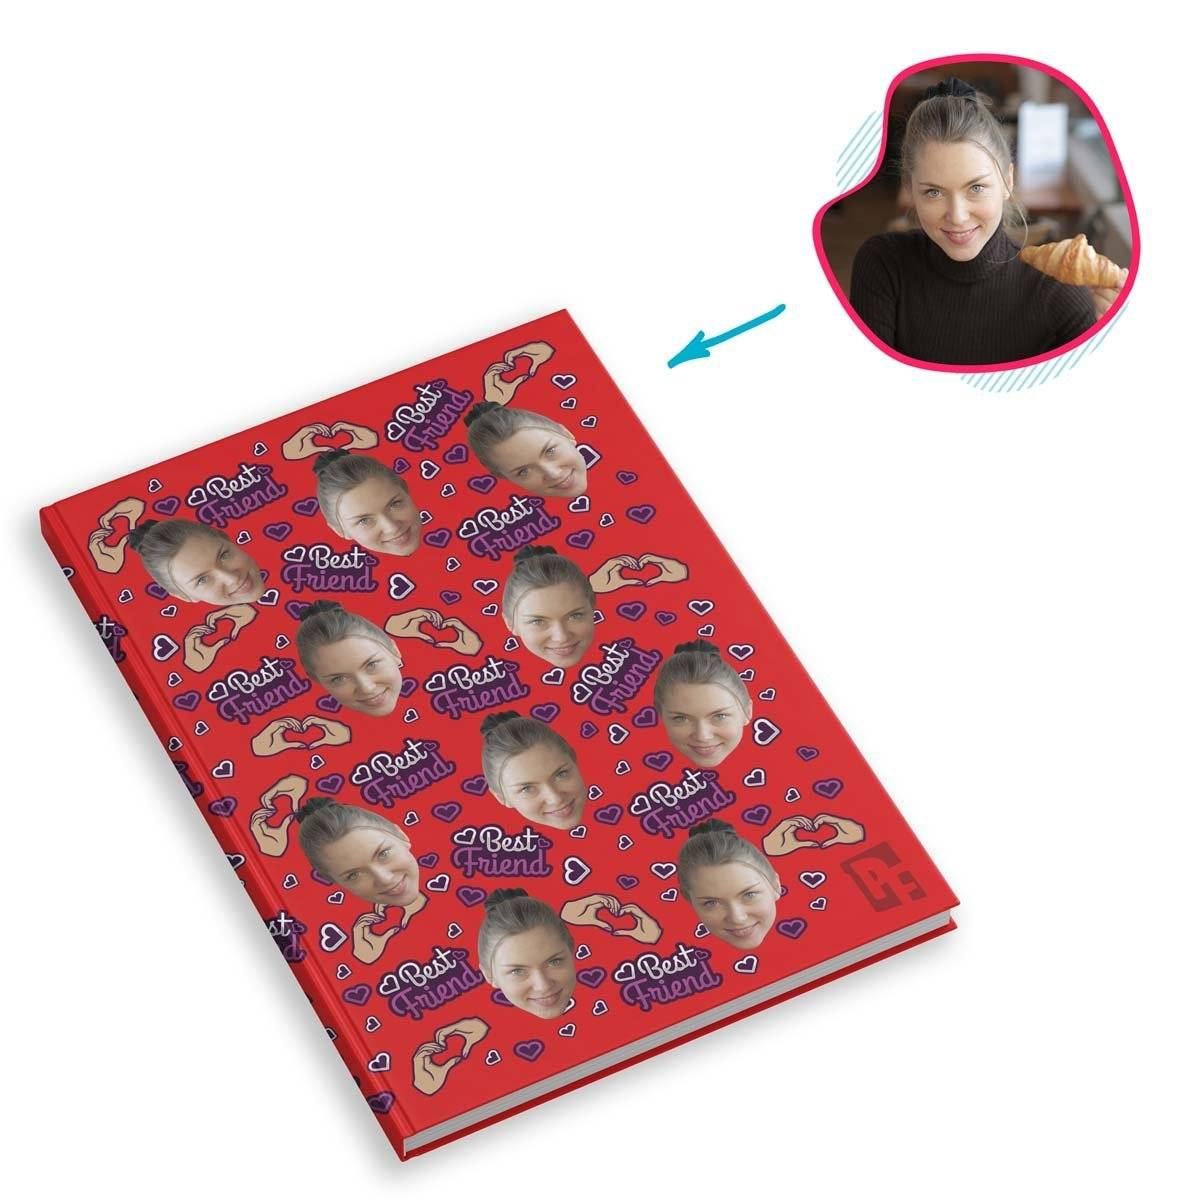 BFF for Her Personalized Journal